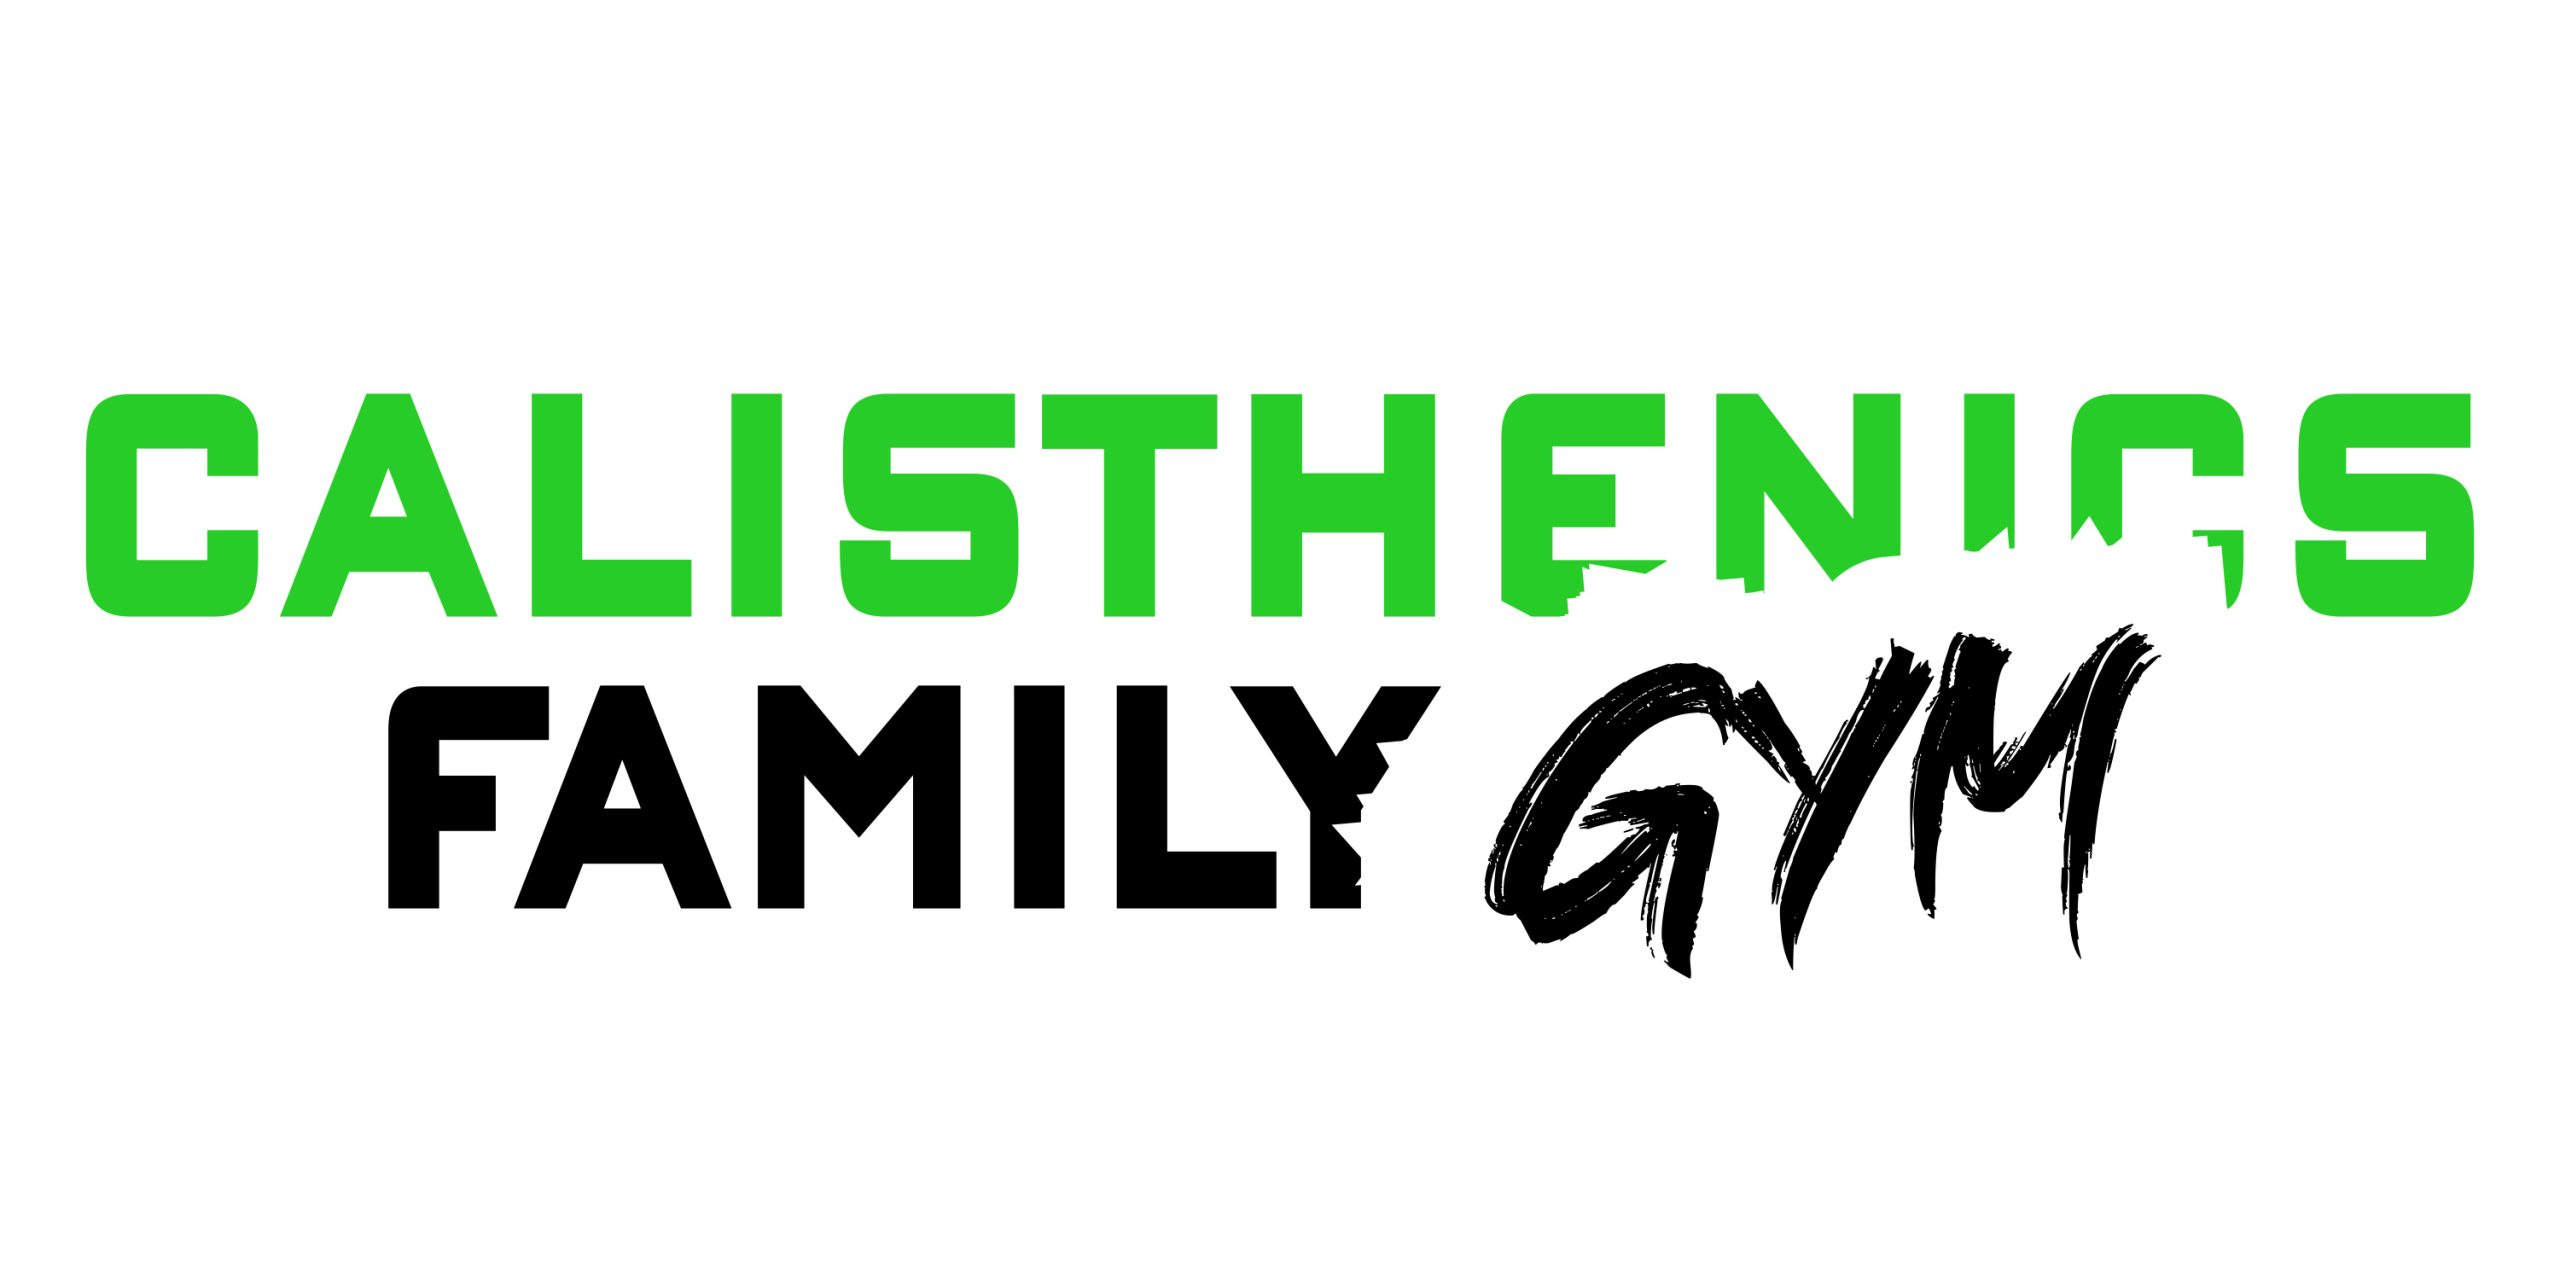 Calisthenics Family Gym